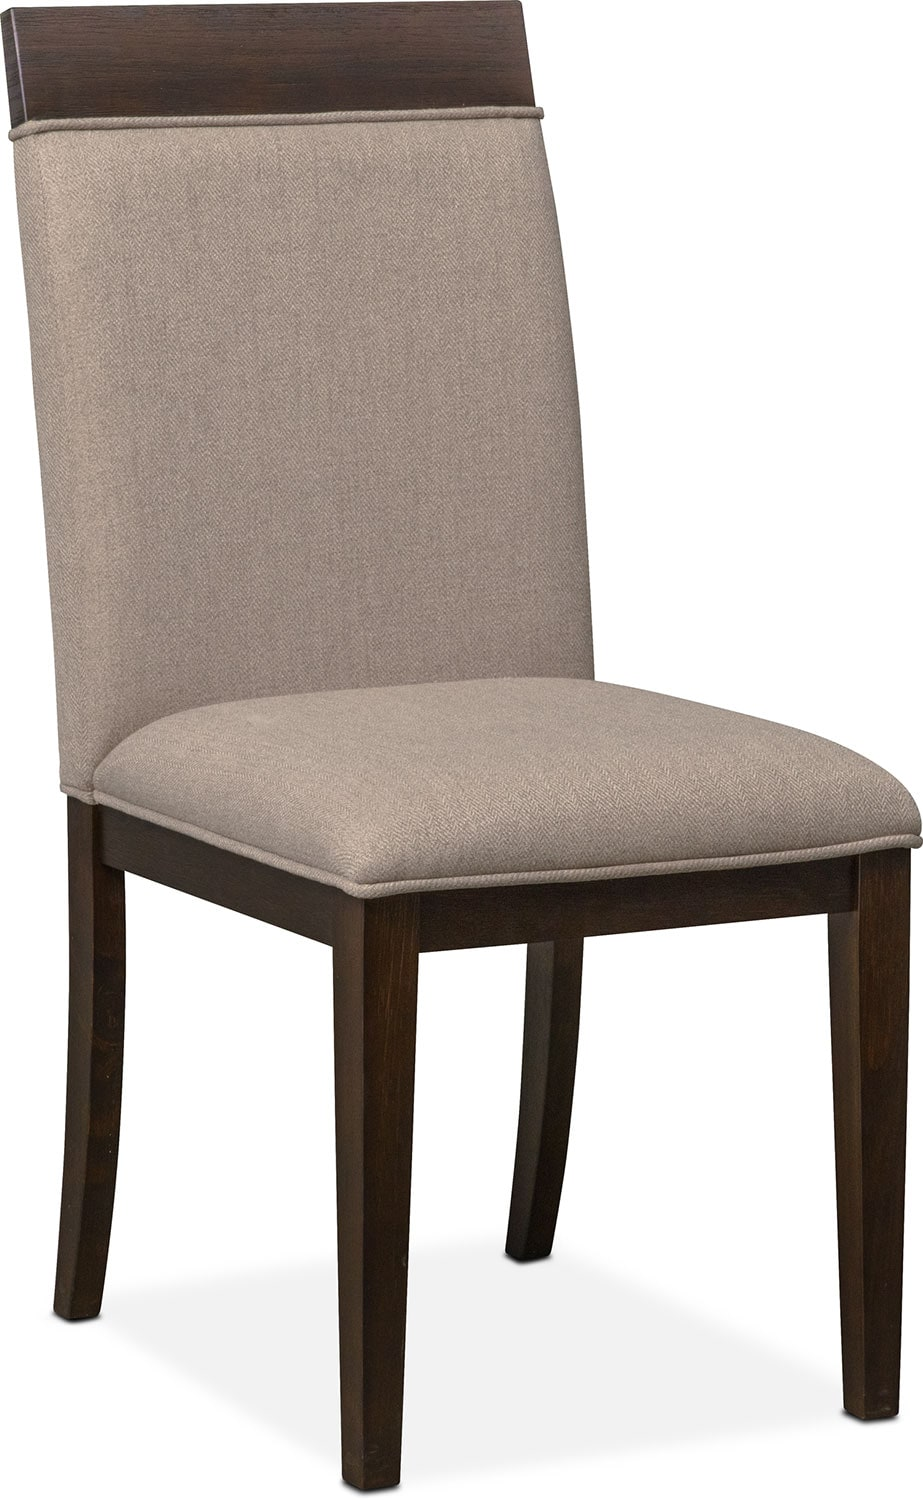 Gavin Side Chair - Brownstone